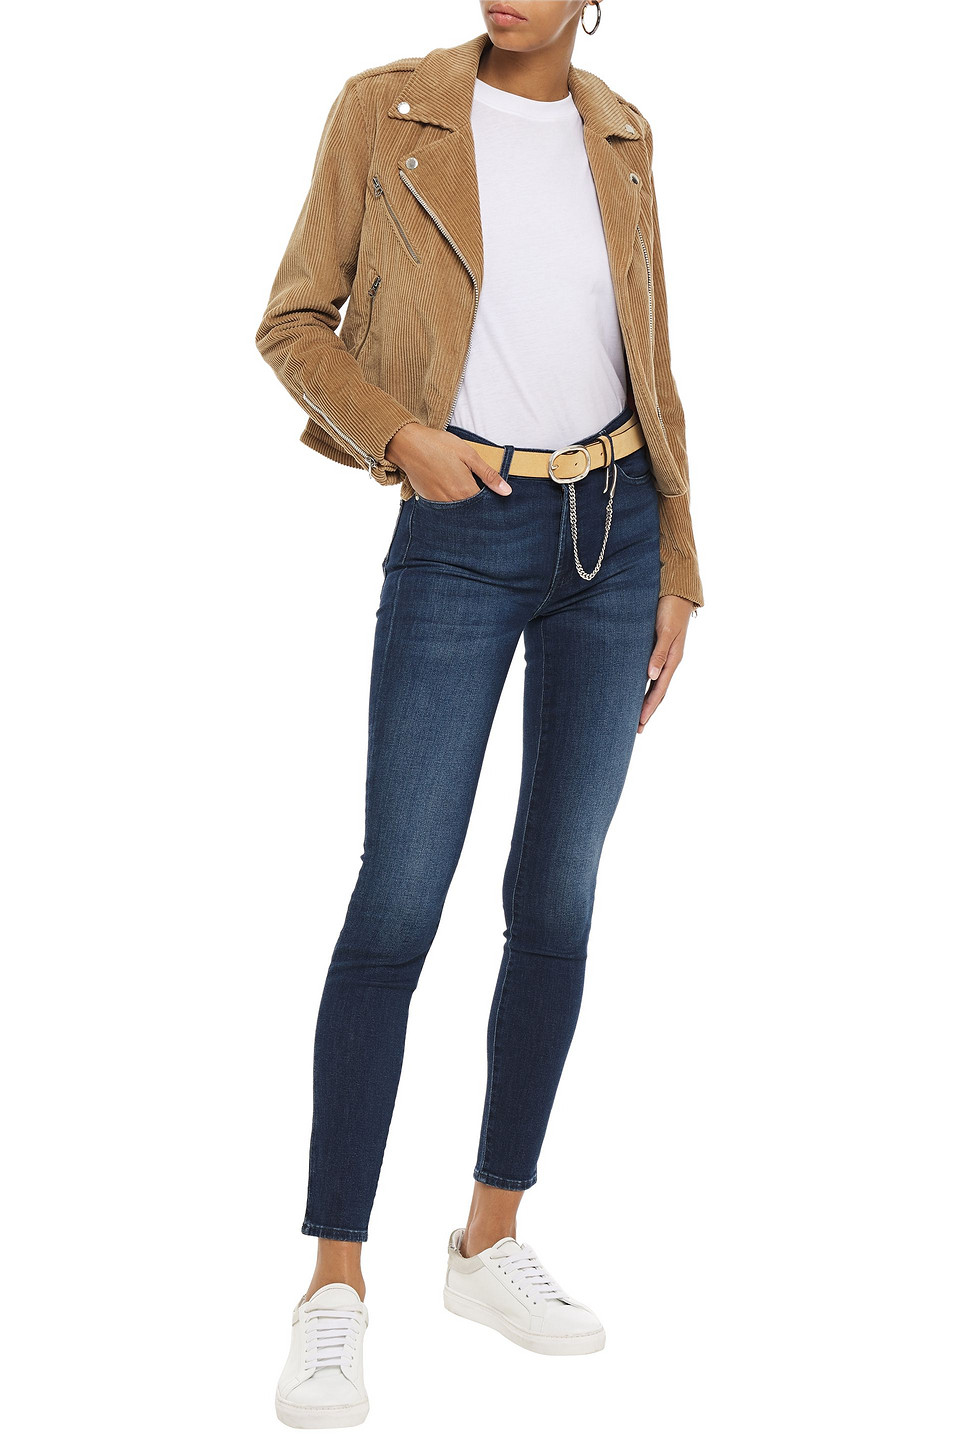 7 For All Mankind | 7 For All Mankind Woman Faded Mid-rise Skinny Jeans Dark Denim | Clouty